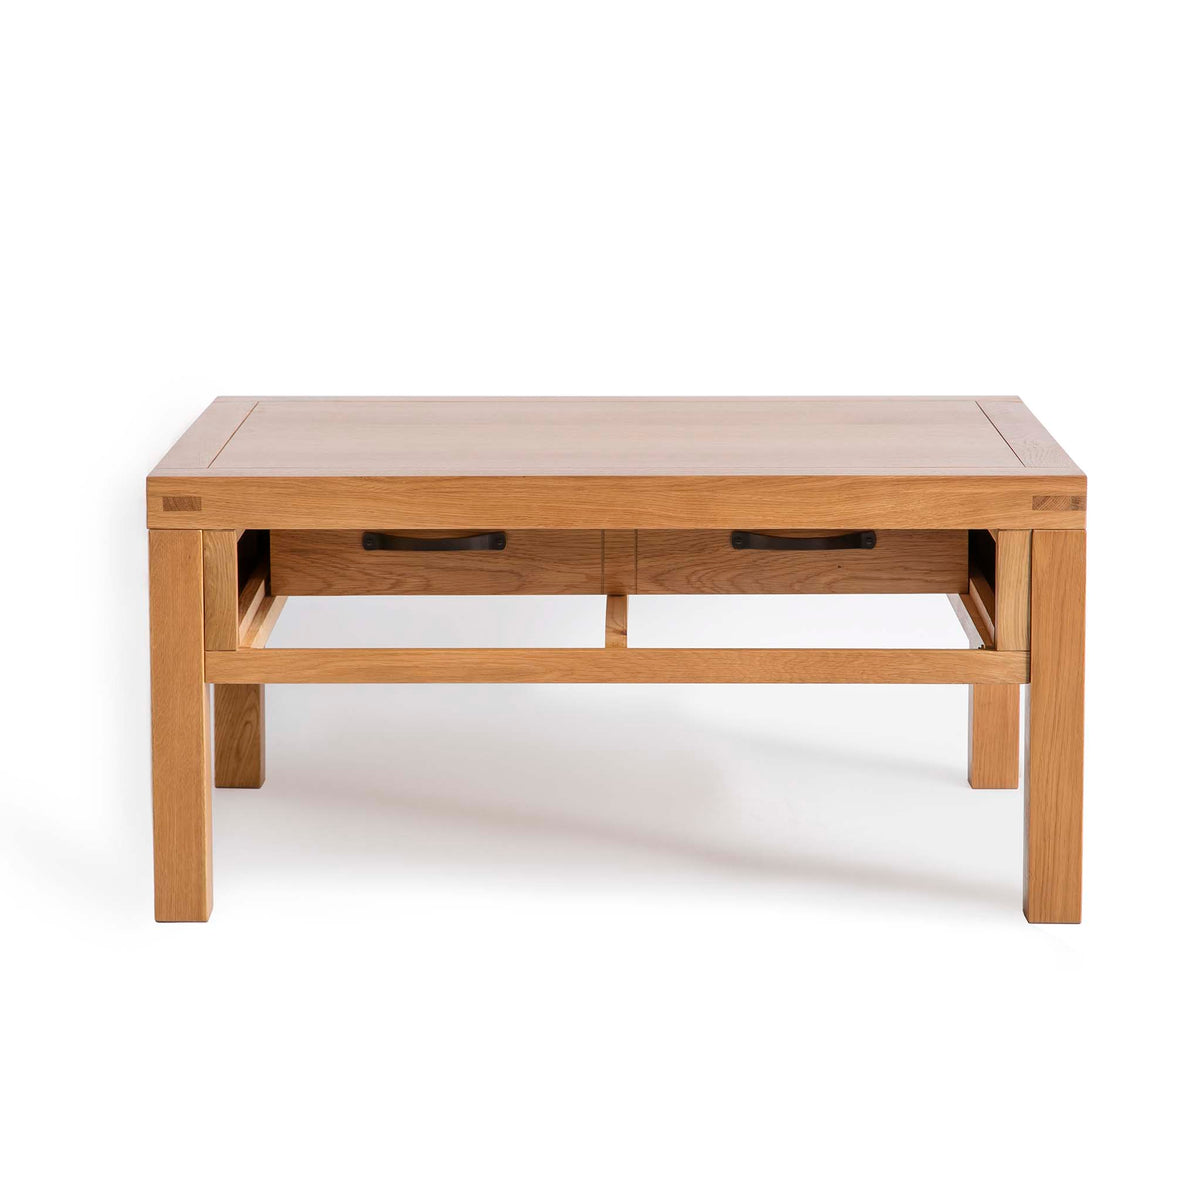 Abbey Waxed Oak Coffee Table with Storage -  Front view with drawer open other side